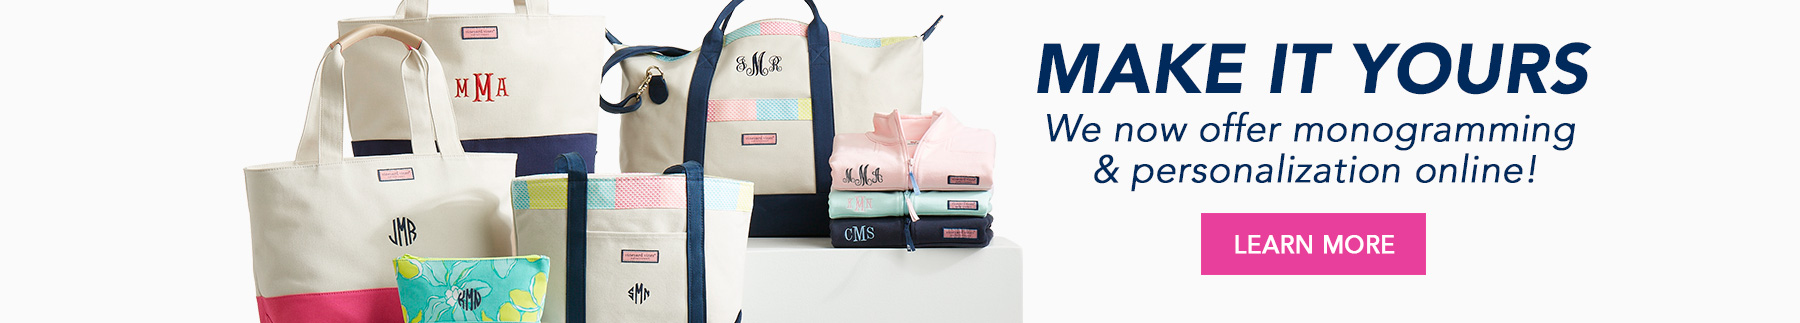 Make it yours. We now offer monograming & personalization online! Learn more.